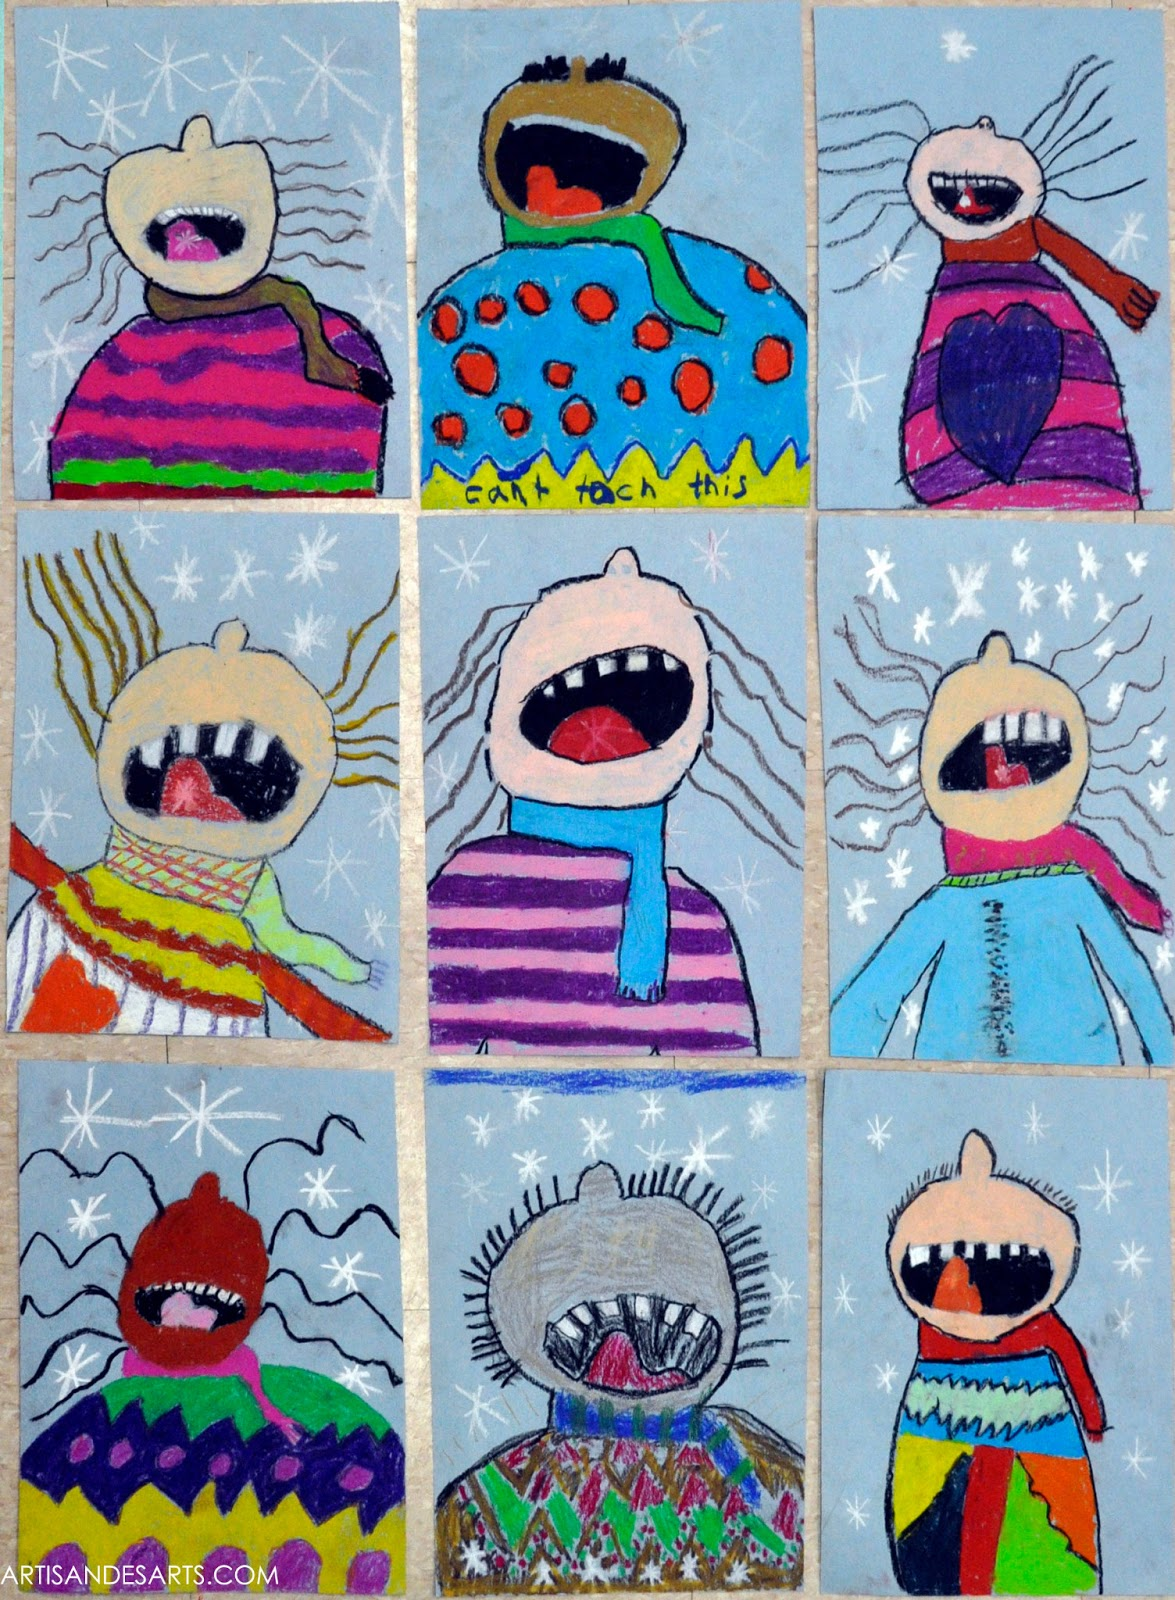 Artisan des arts catching snowflakes grade 3 for Crafts for 3rd graders